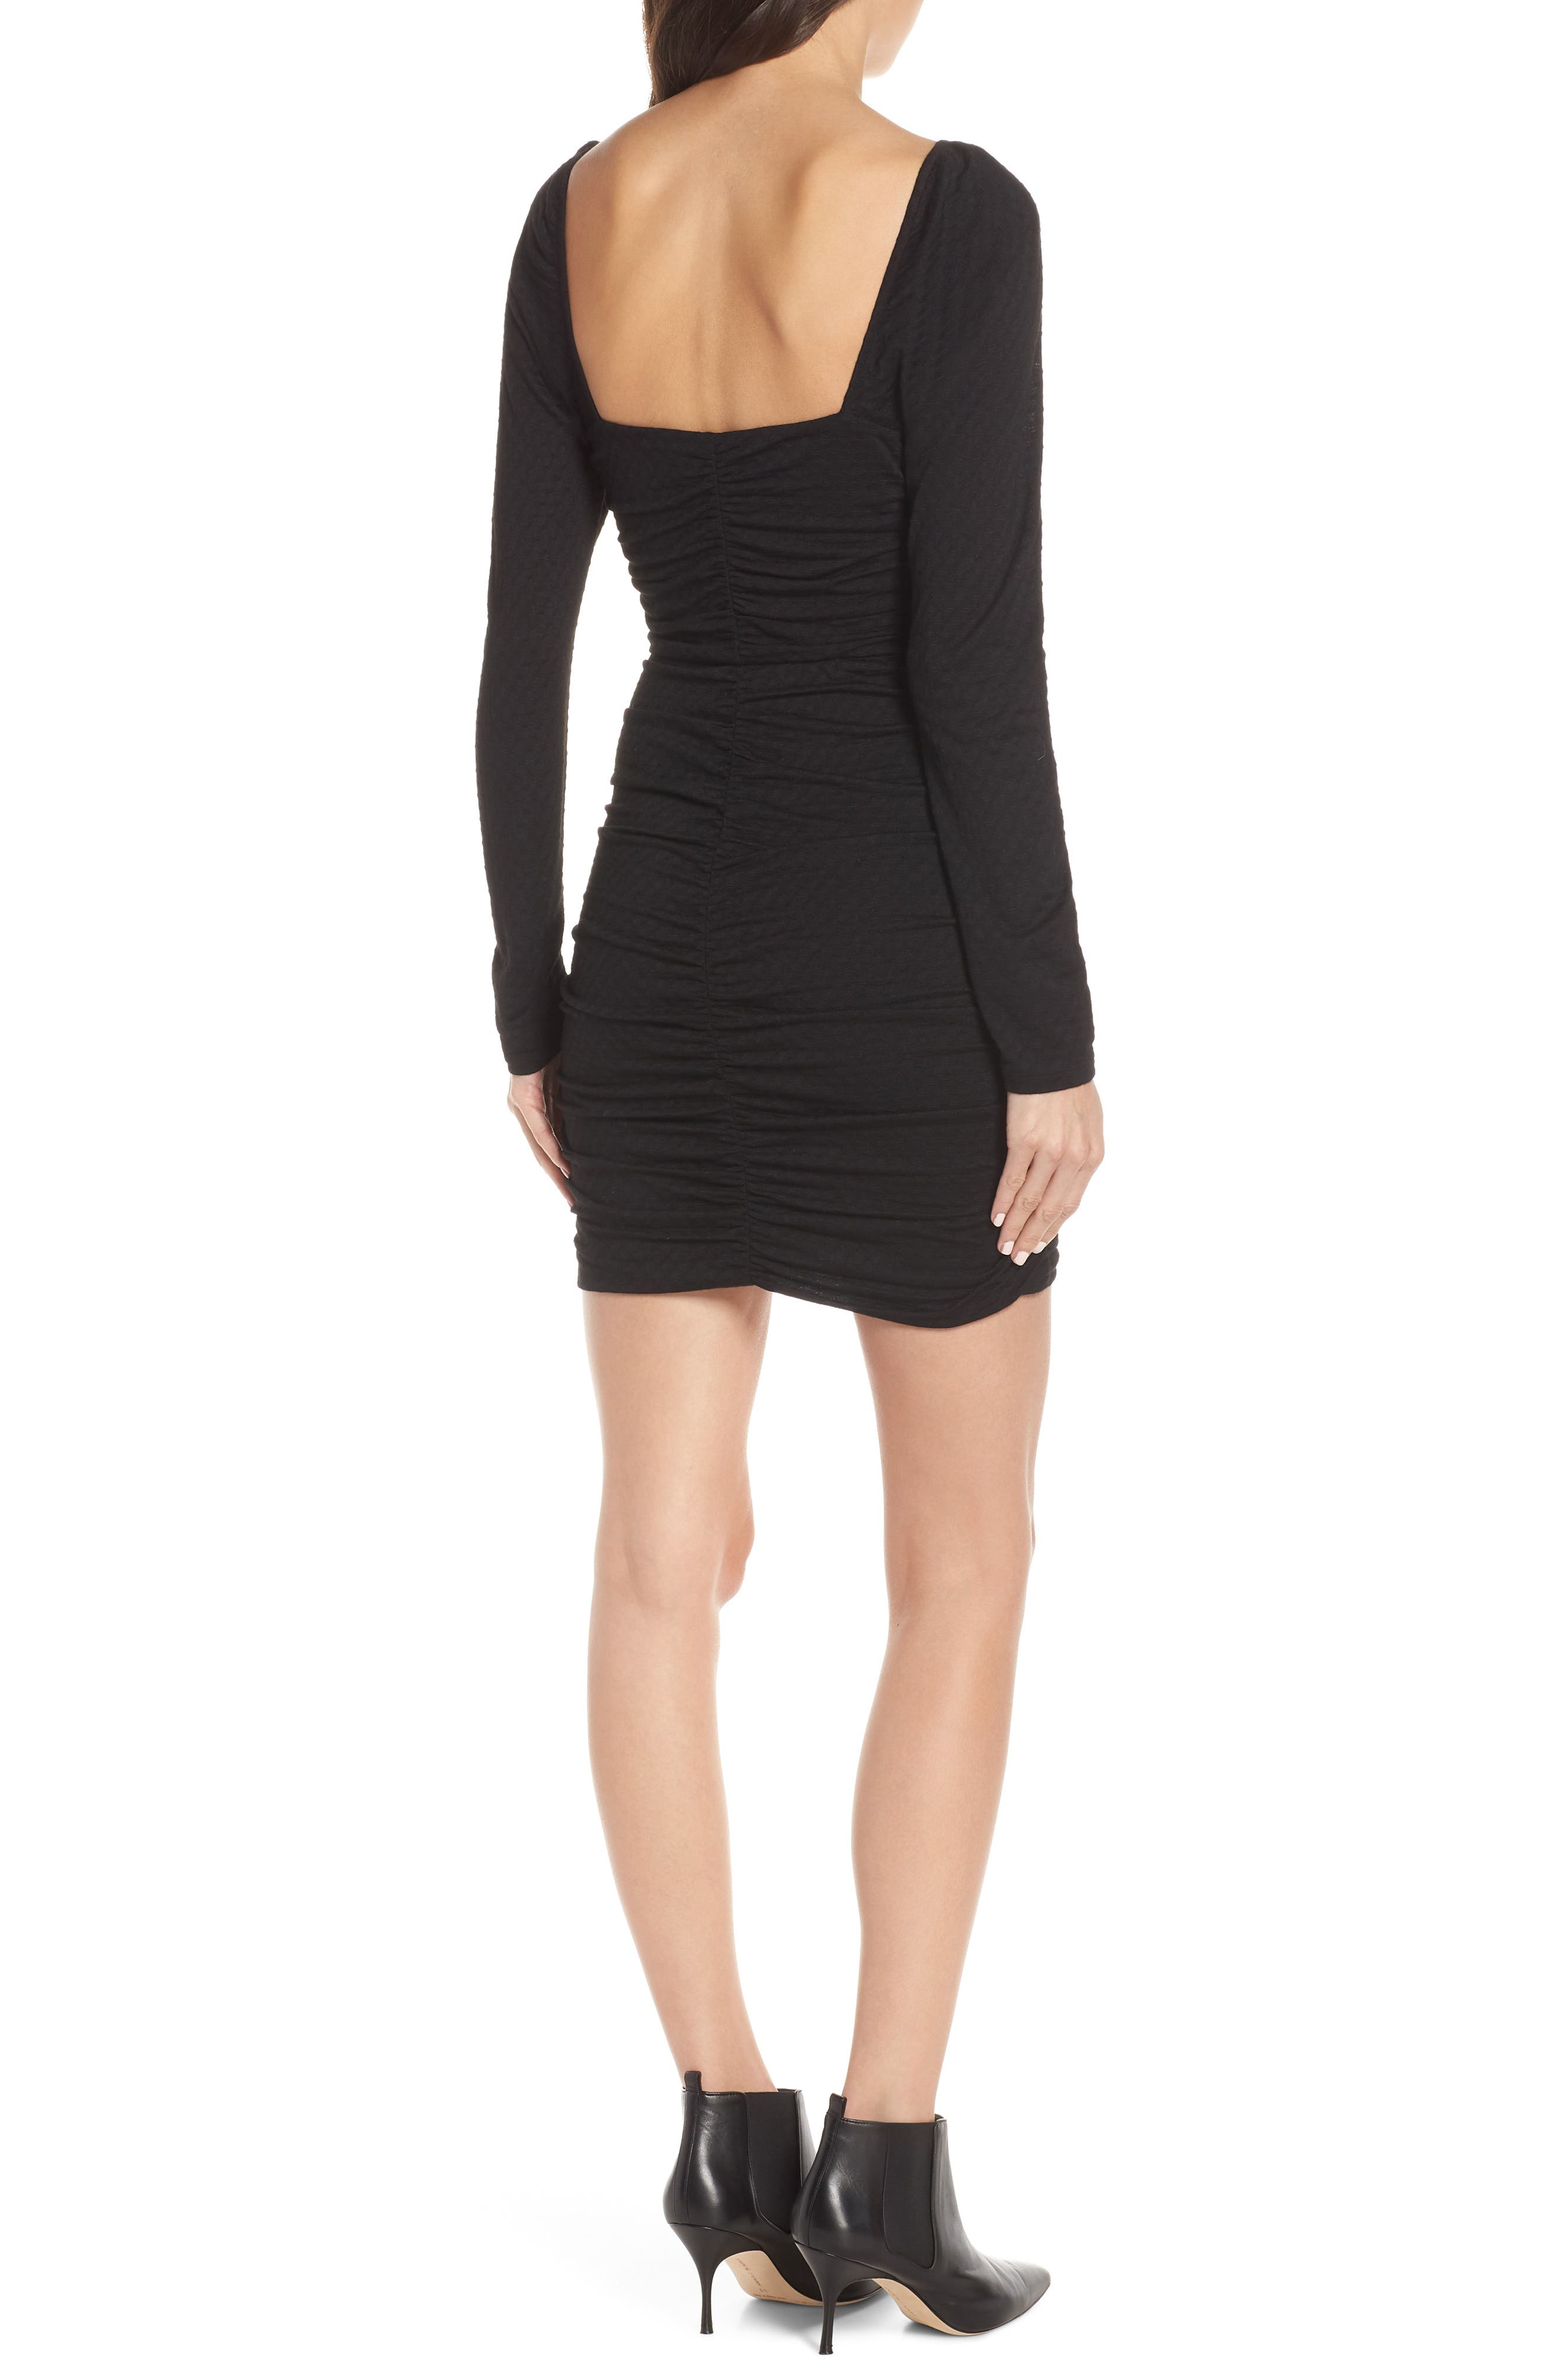 ALI & JAY, Ruched Body-Con Dress, Alternate thumbnail 2, color, BLACK